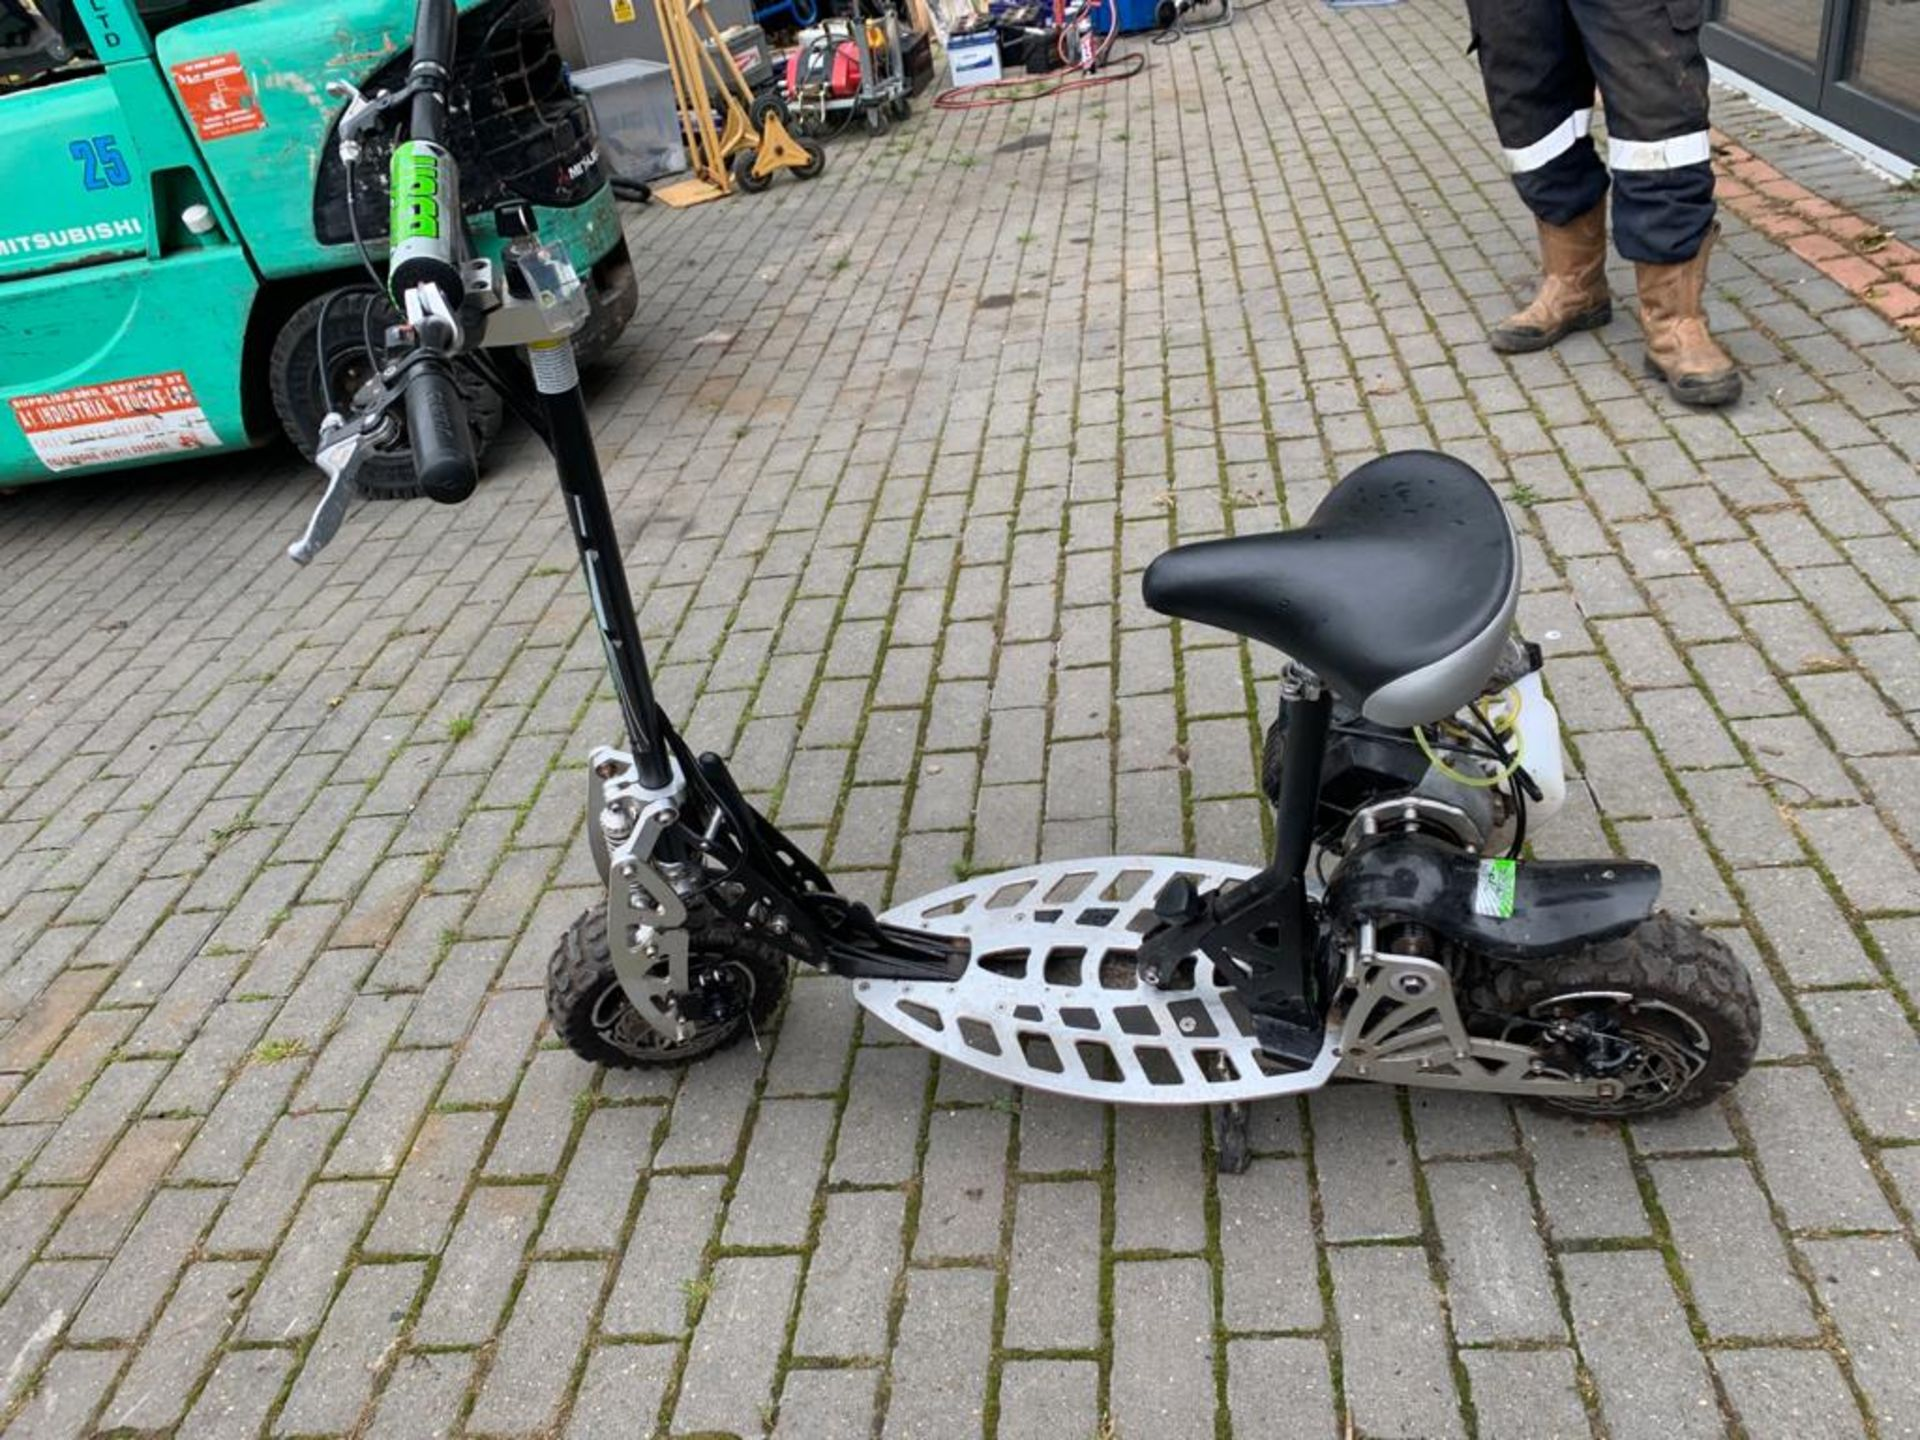 2-STROKE RIDE ON SCOOTER, RUNS AND DRIVES AS IT SHOULD *PLUS VAT* - Image 2 of 8